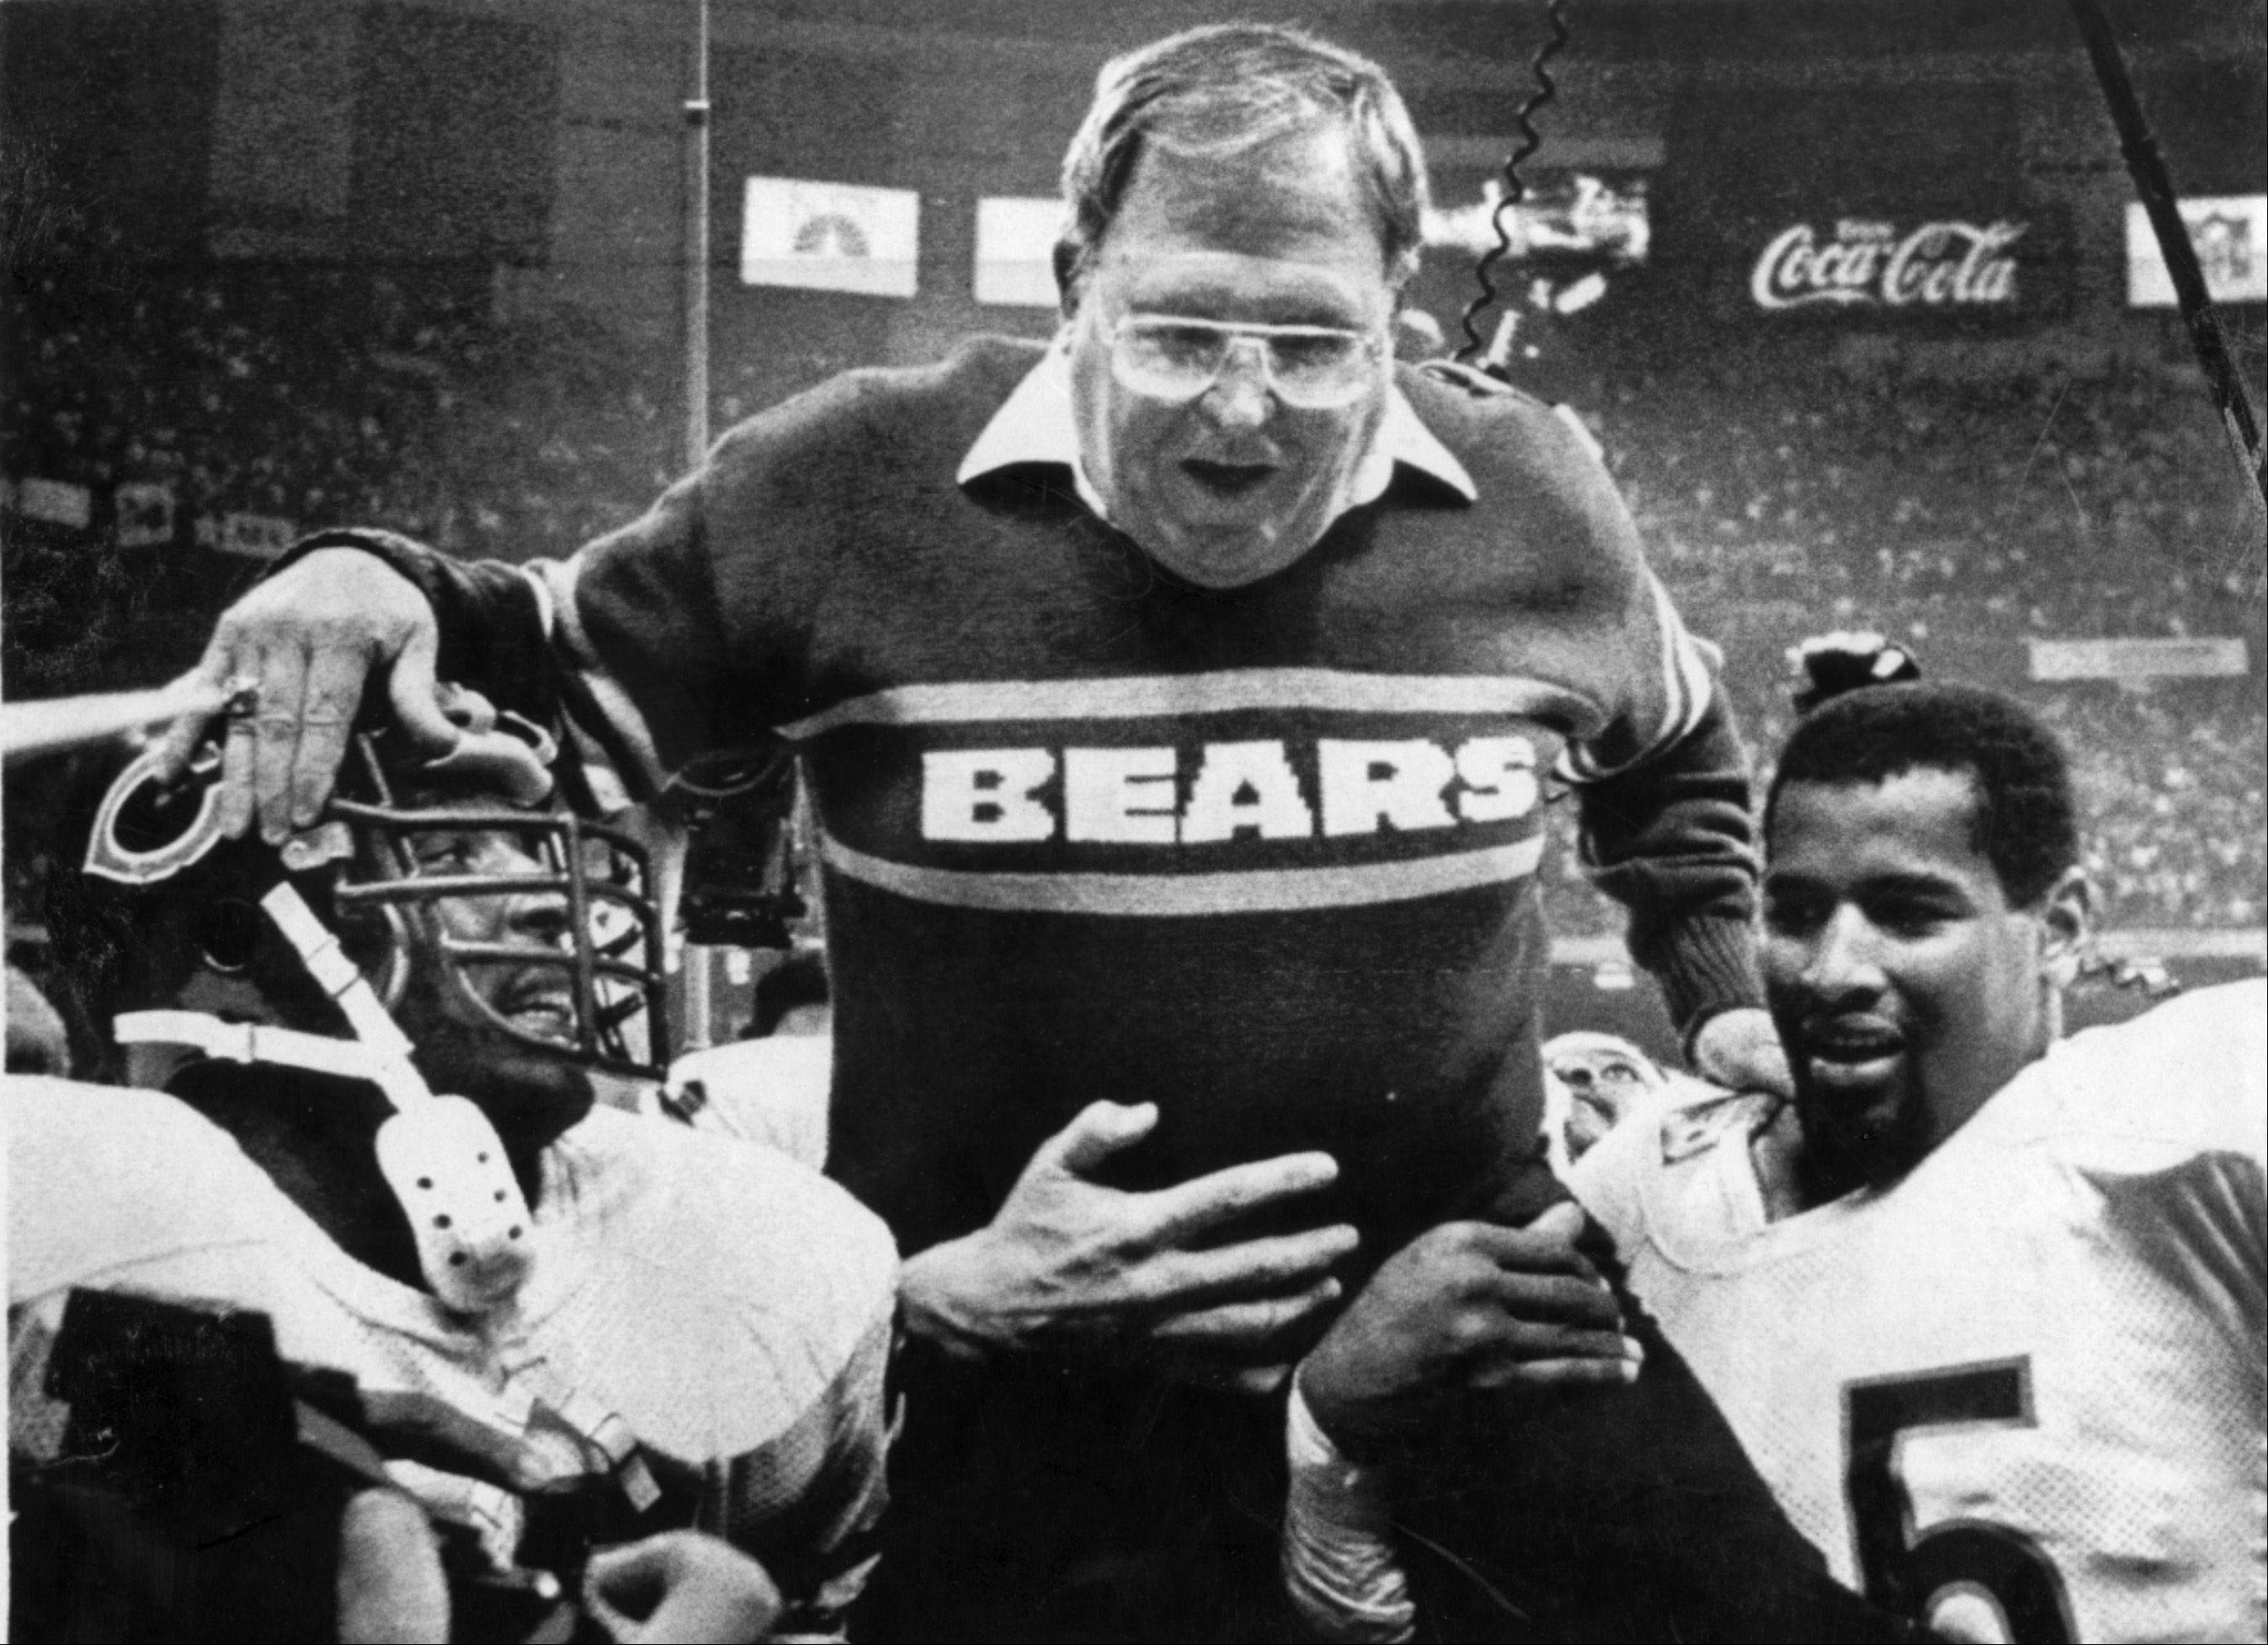 Chicago Bears defensive coordinator Buddy Ryan is hoisted on the shoulders of Otis Wilson, left, and Richard Dent, right, after the Bears' lopsided 46-10 victory over the New England Patriots in Super Bowl XX in 1986.